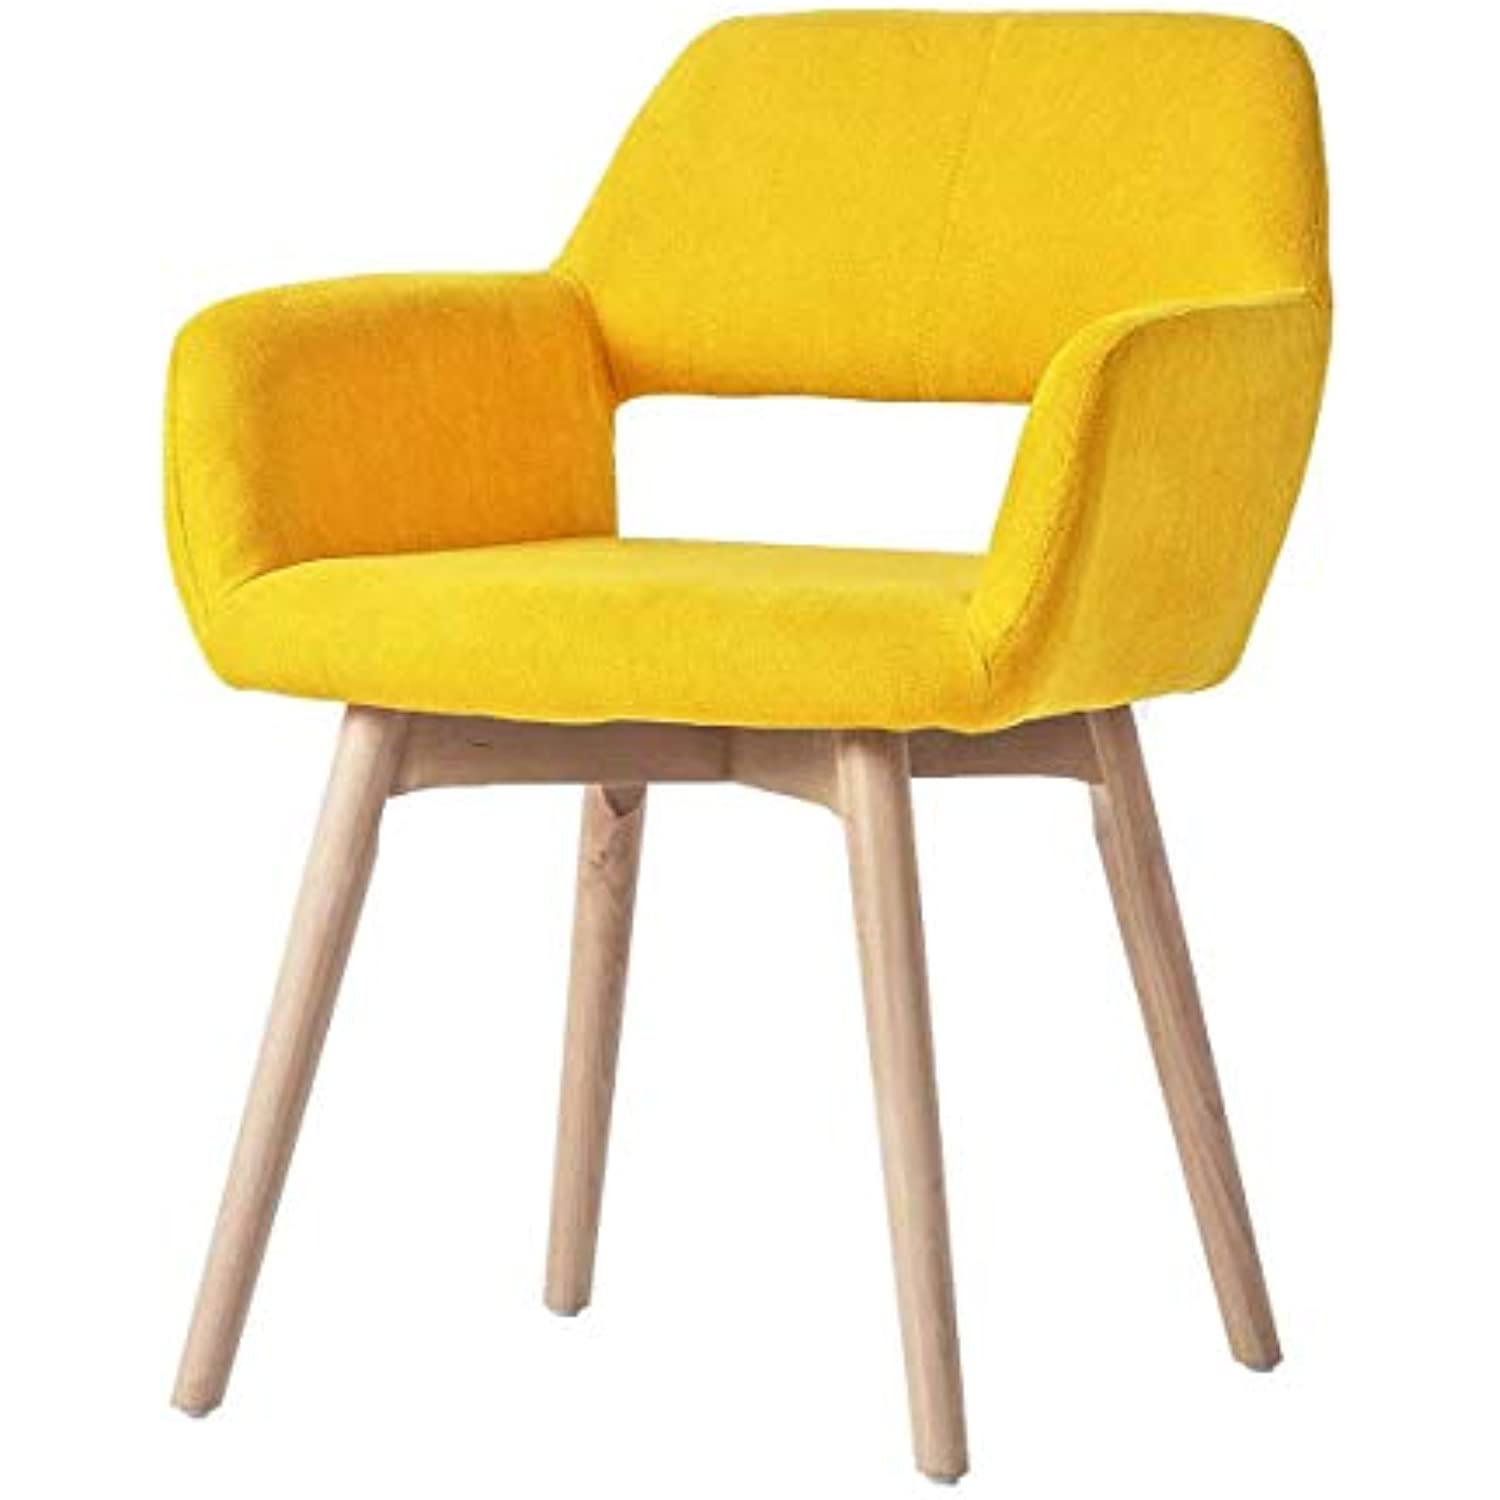 YEEFY Dining Chairs Set of 1 Modern Accent Living Room Chairs With Solid Wood Legs, Set of 1(Yellow)